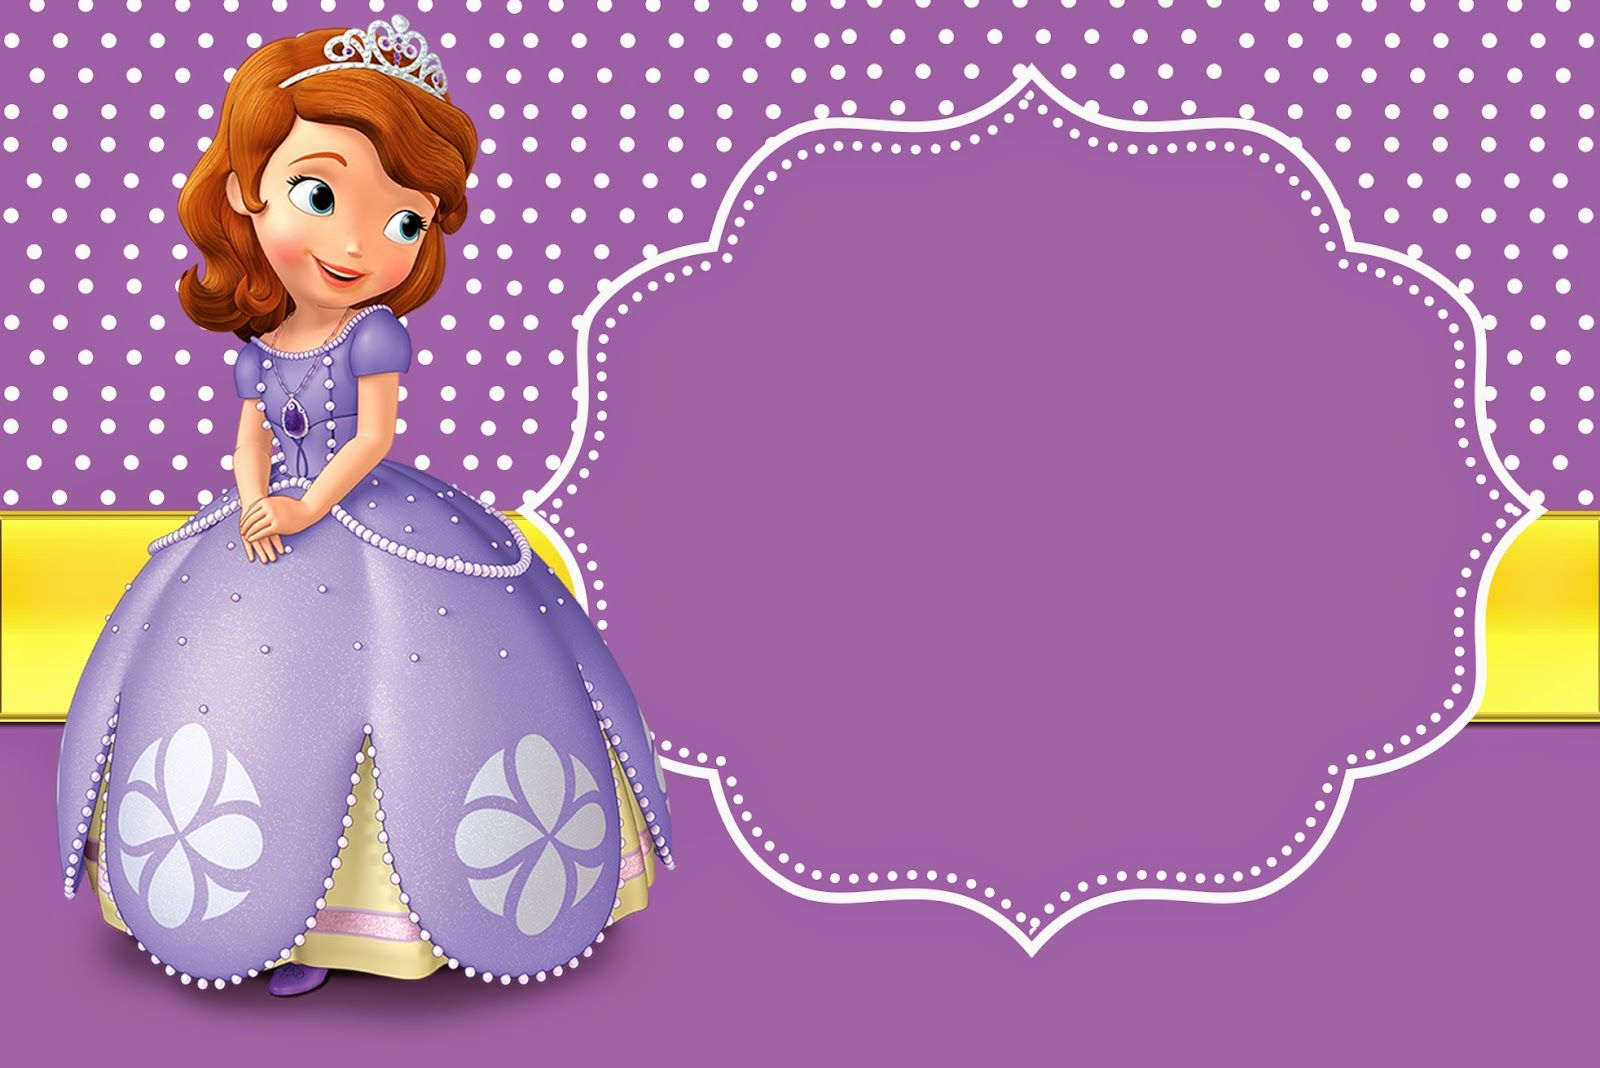 Disney Princess Party Invites for perfect invitations example